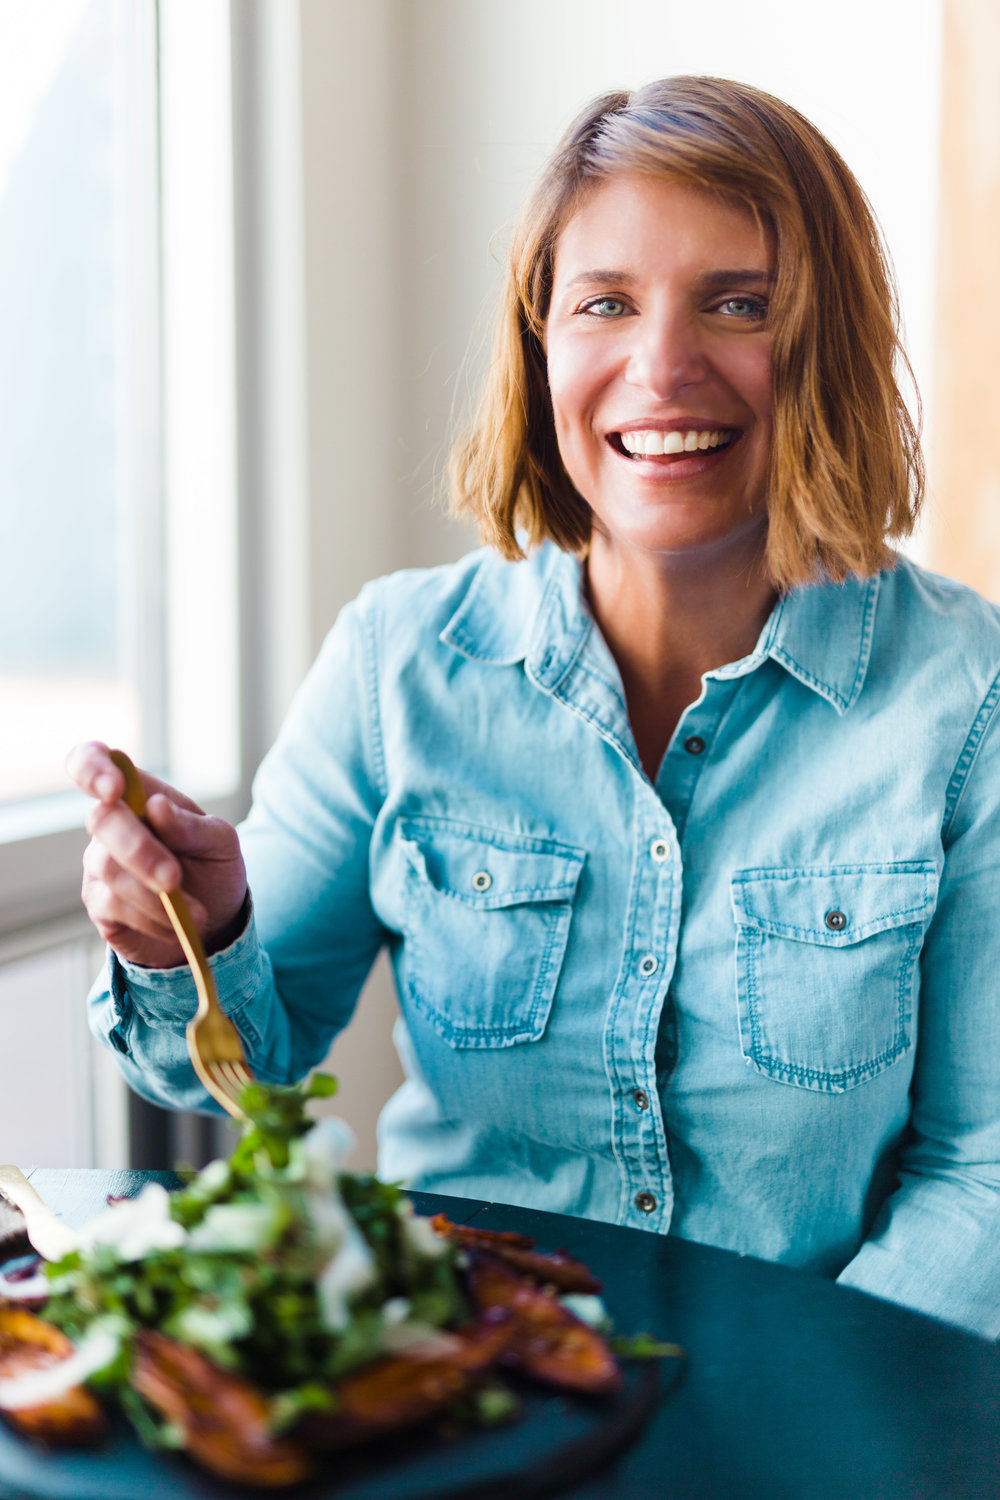 vivian howard recipes arugula salad with parm and sweet potato skins photographs by baxter miller